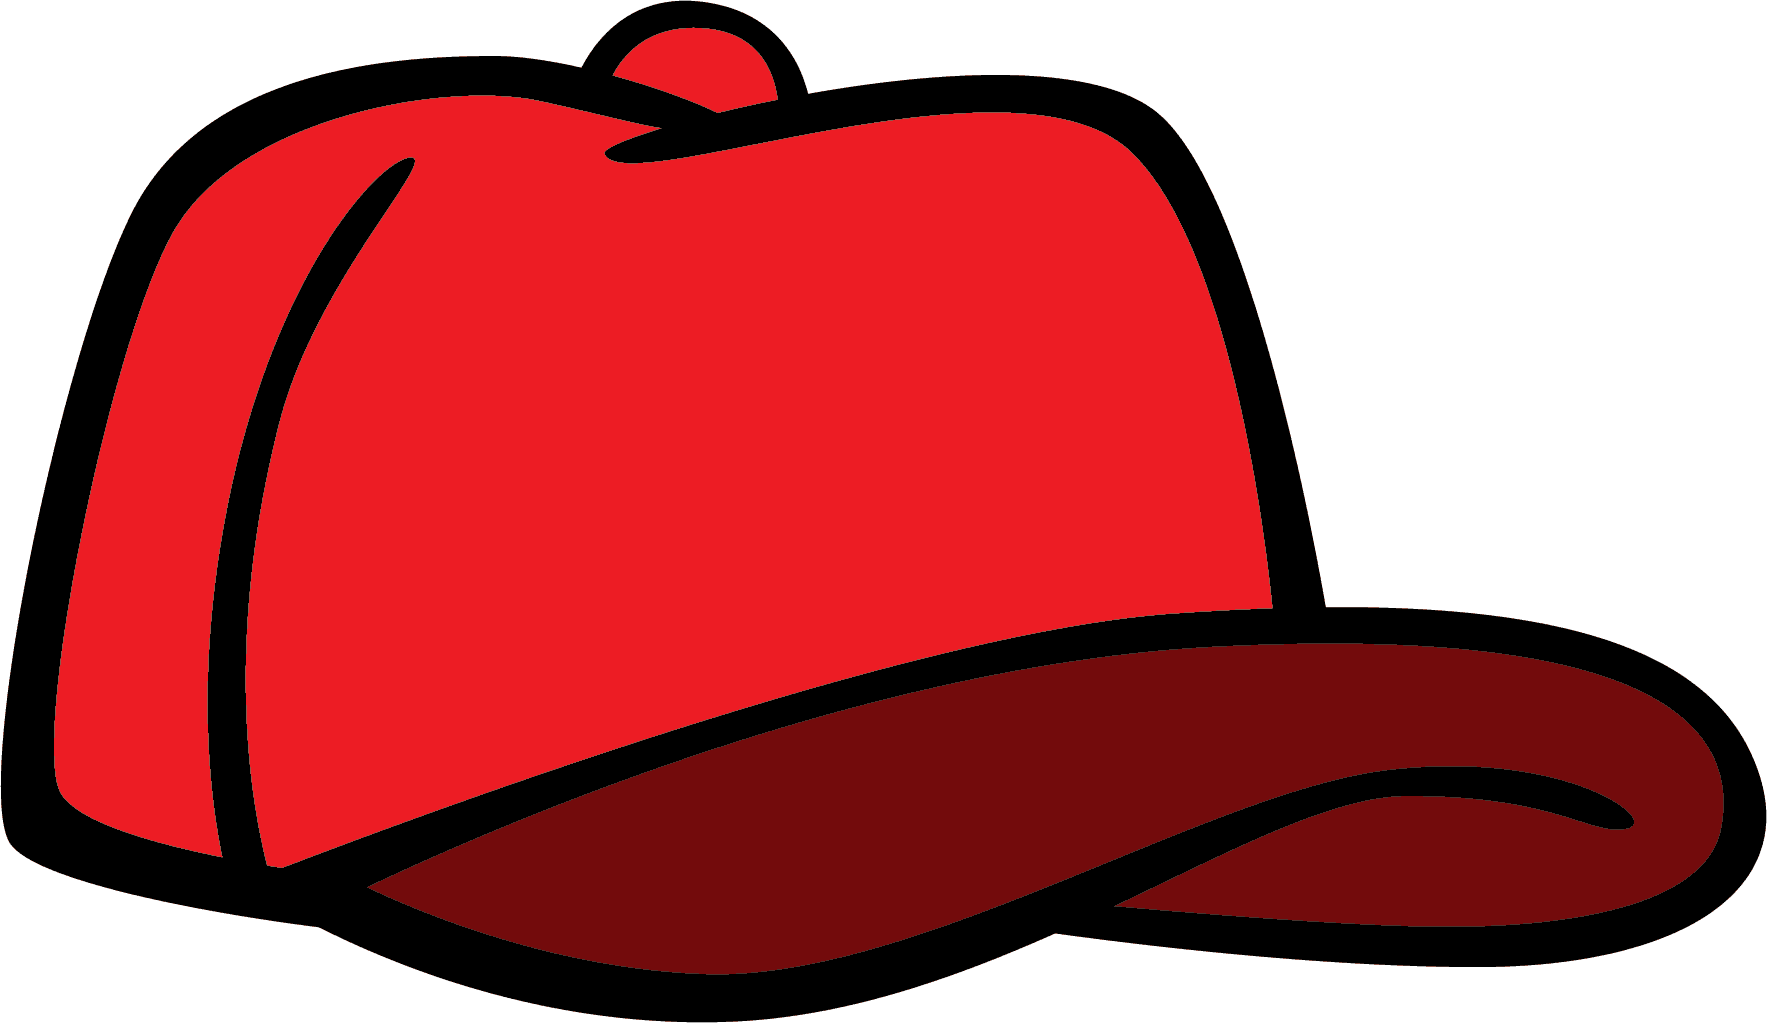 Red Hat Clip Art Free - ClipArt Best-Red Hat Clip Art Free - ClipArt Best-8